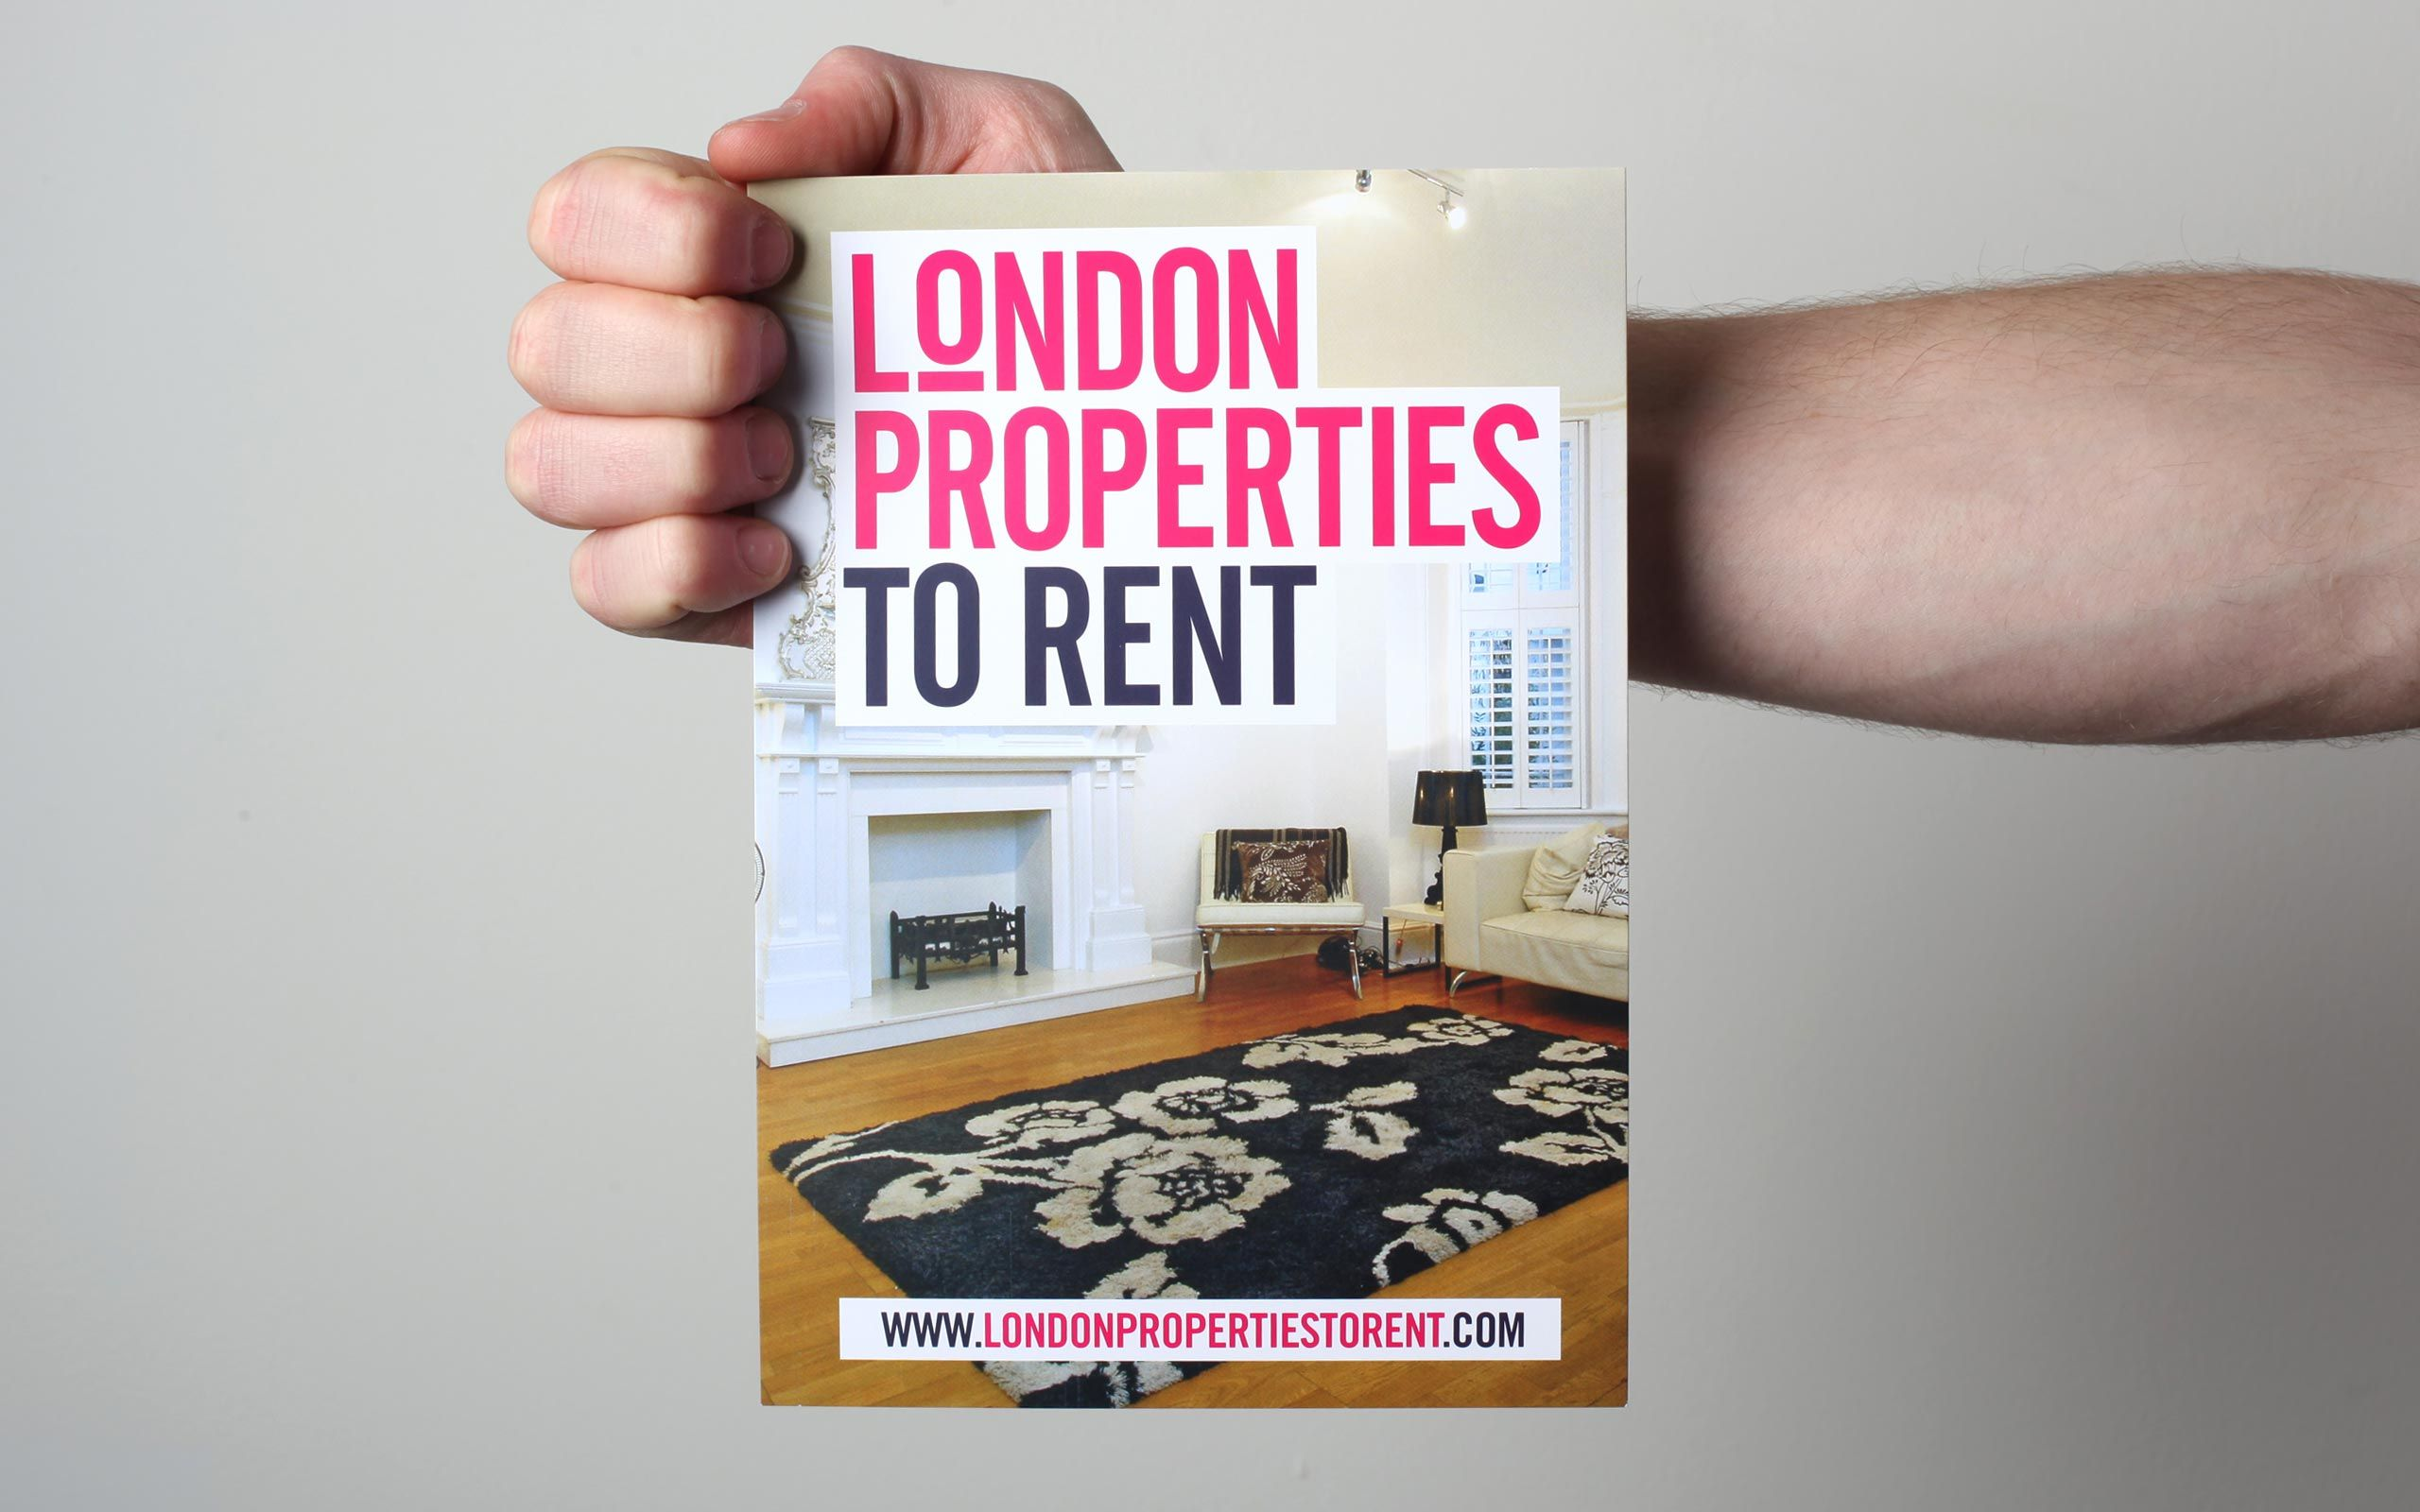 Two Times Elliot - London properties to rent